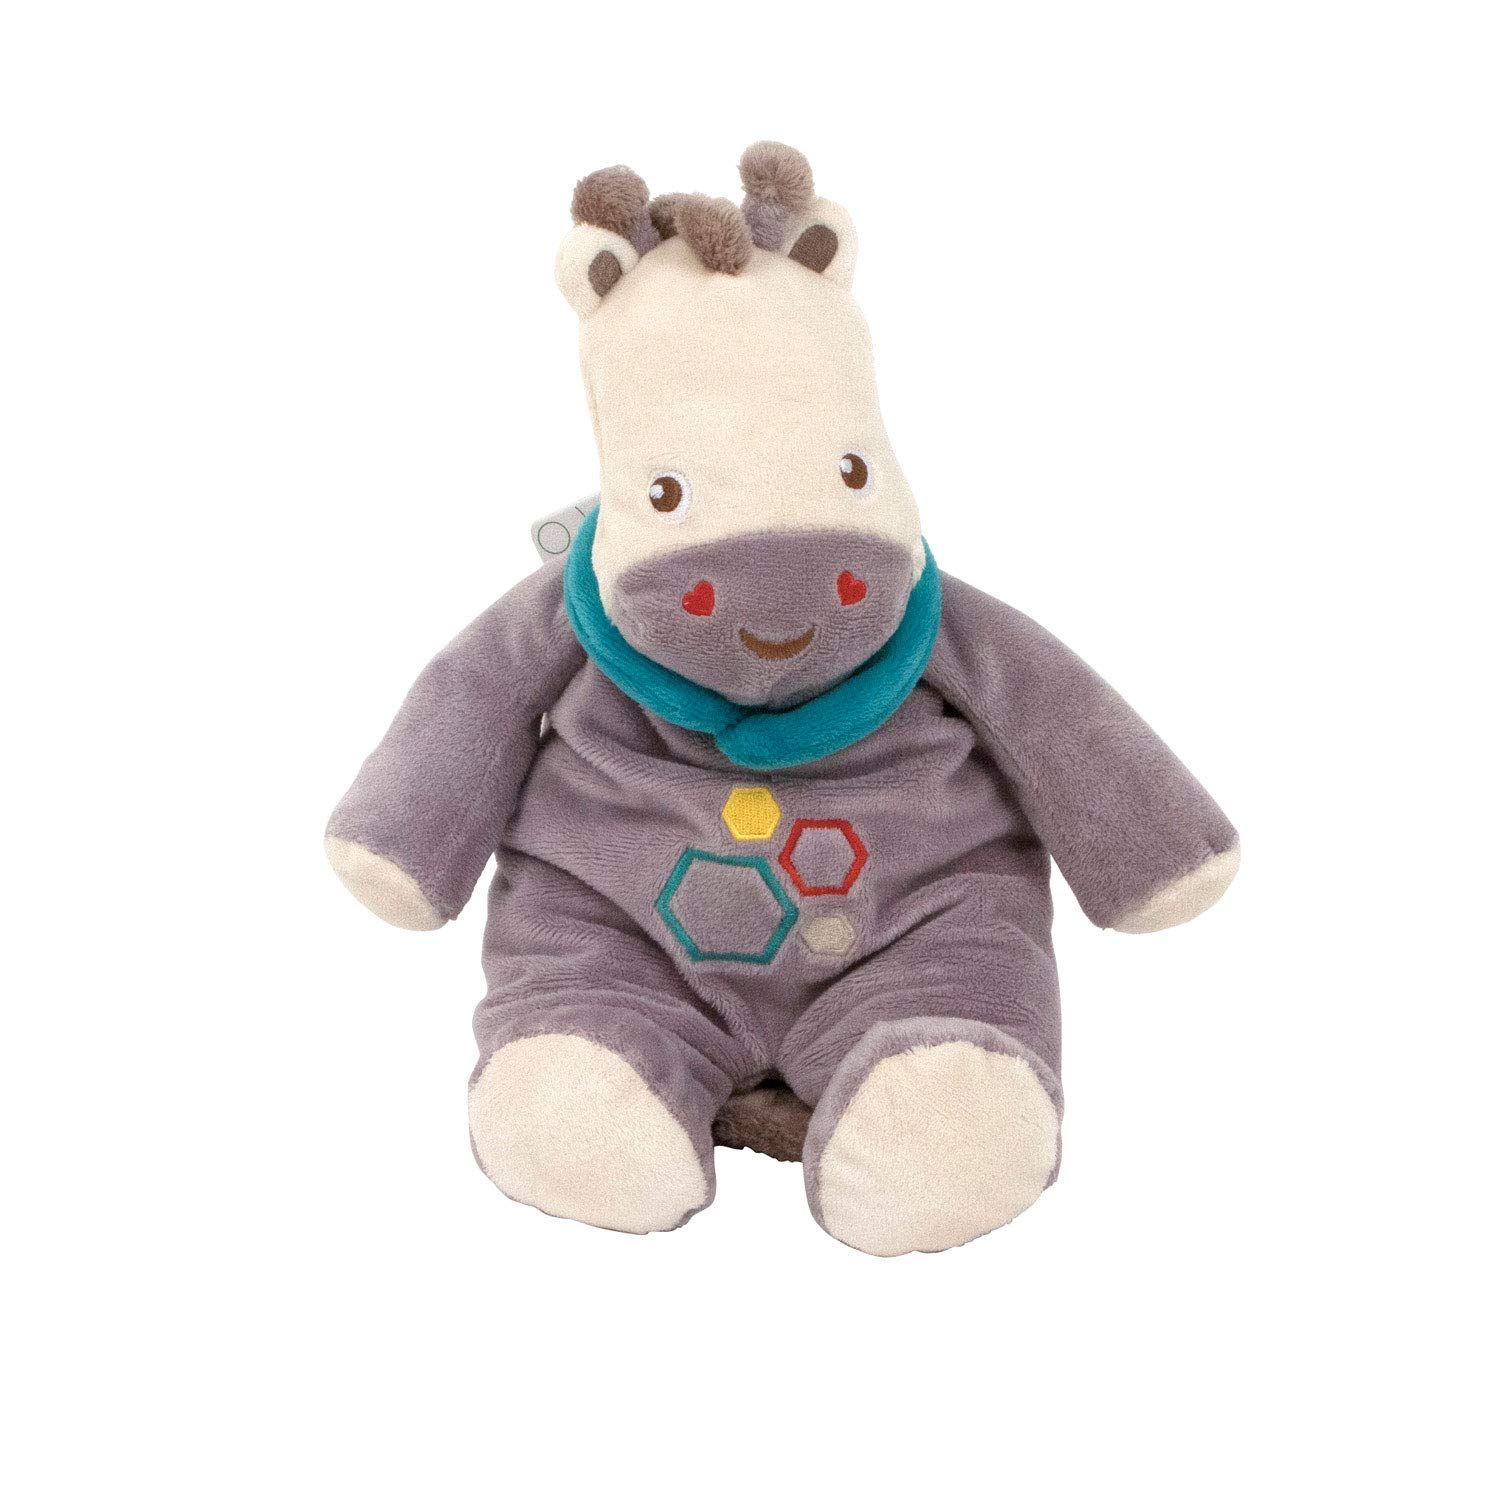 Arditex FP10090 FP Giraffe Seated with Rattle, Multi-Colour, 28 cm